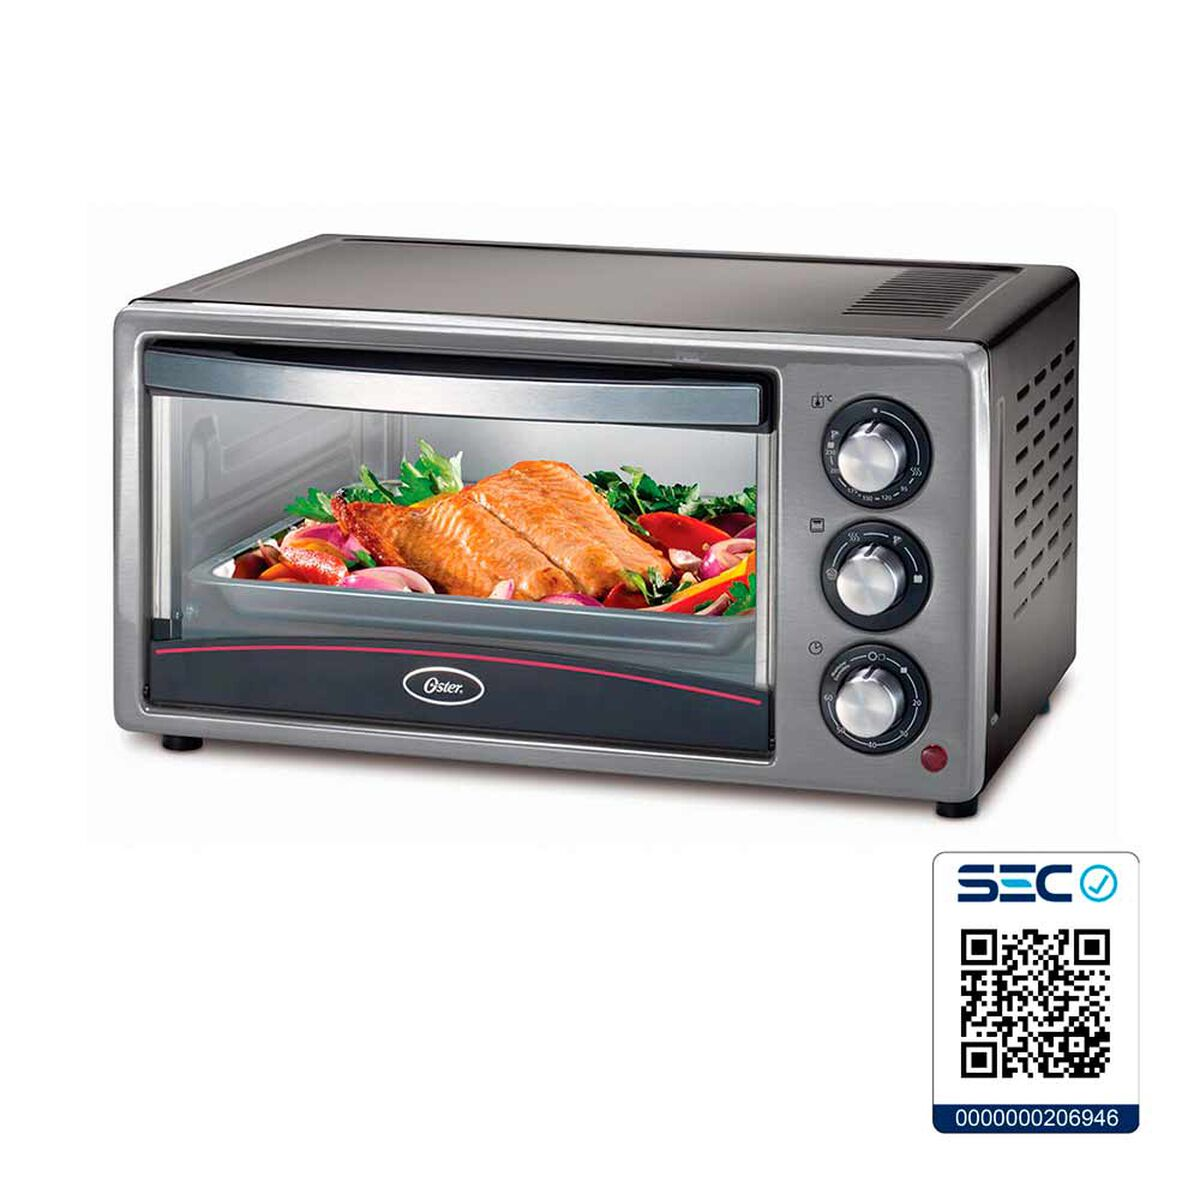 Horno Eléctrico Oster 15LTB 15 lts